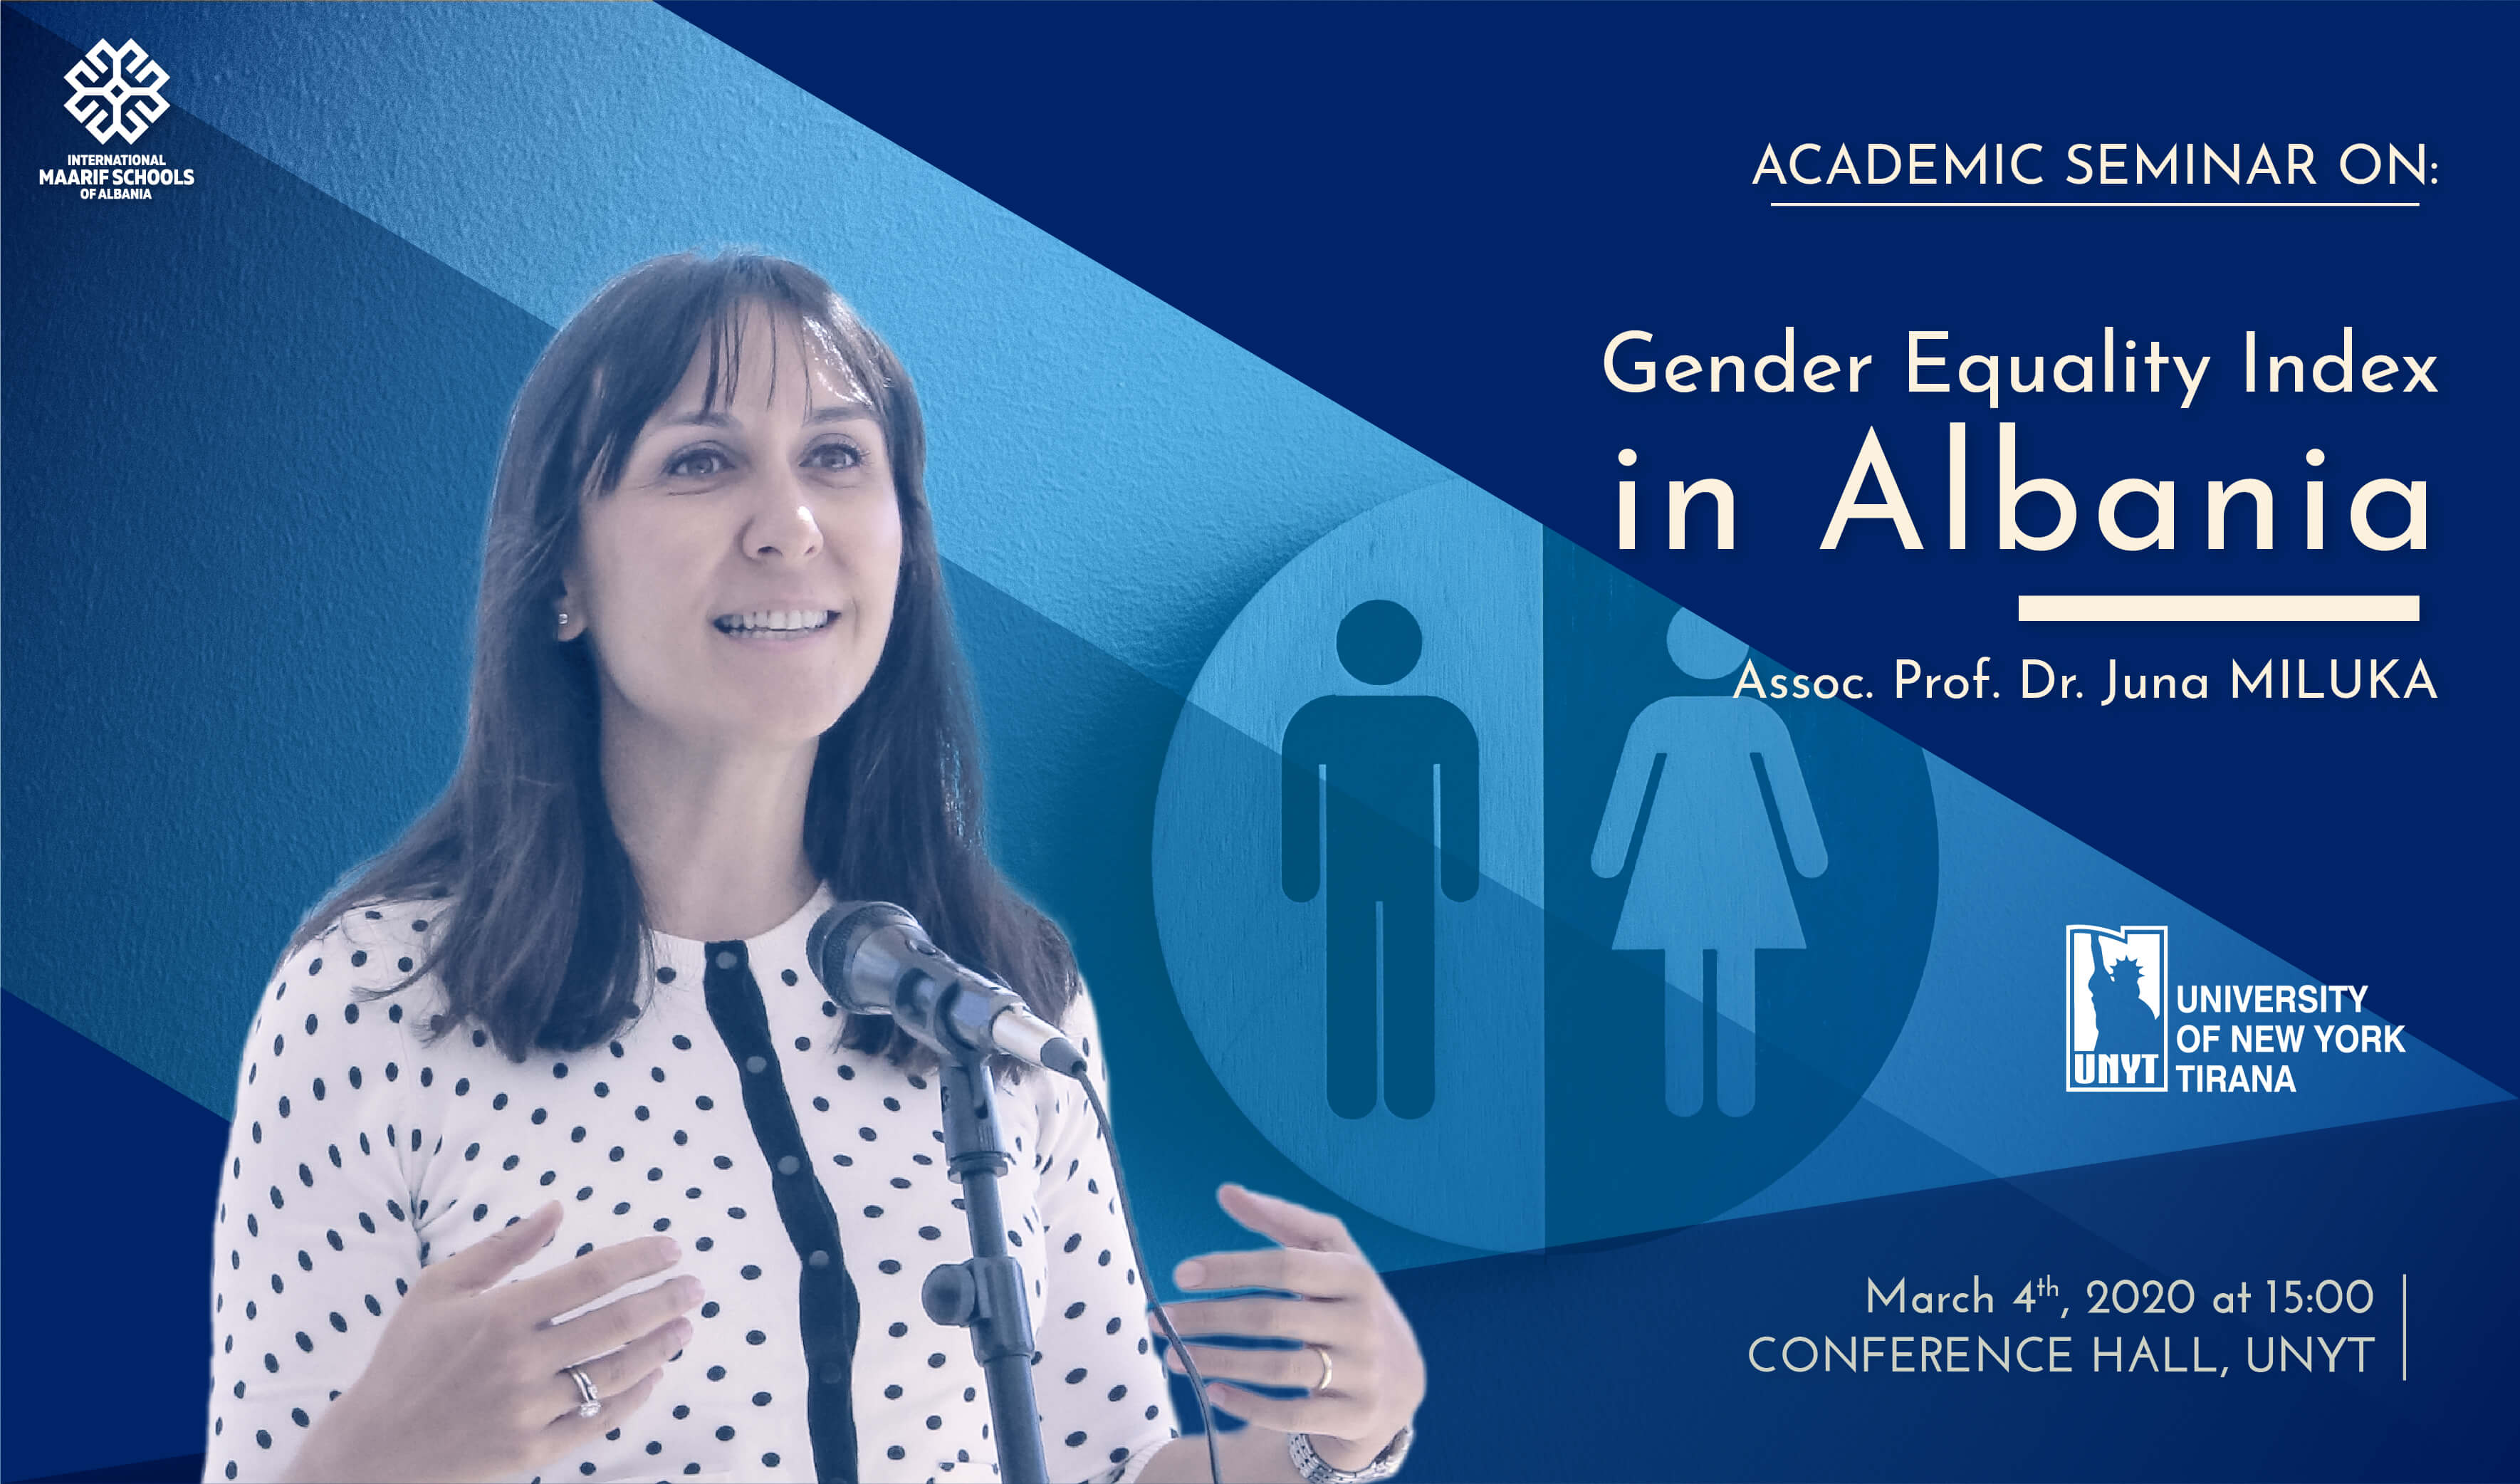 """""""Gender Equality Index in Albania"""" by Assoc. Prof. Dr. Juna Miluka"""